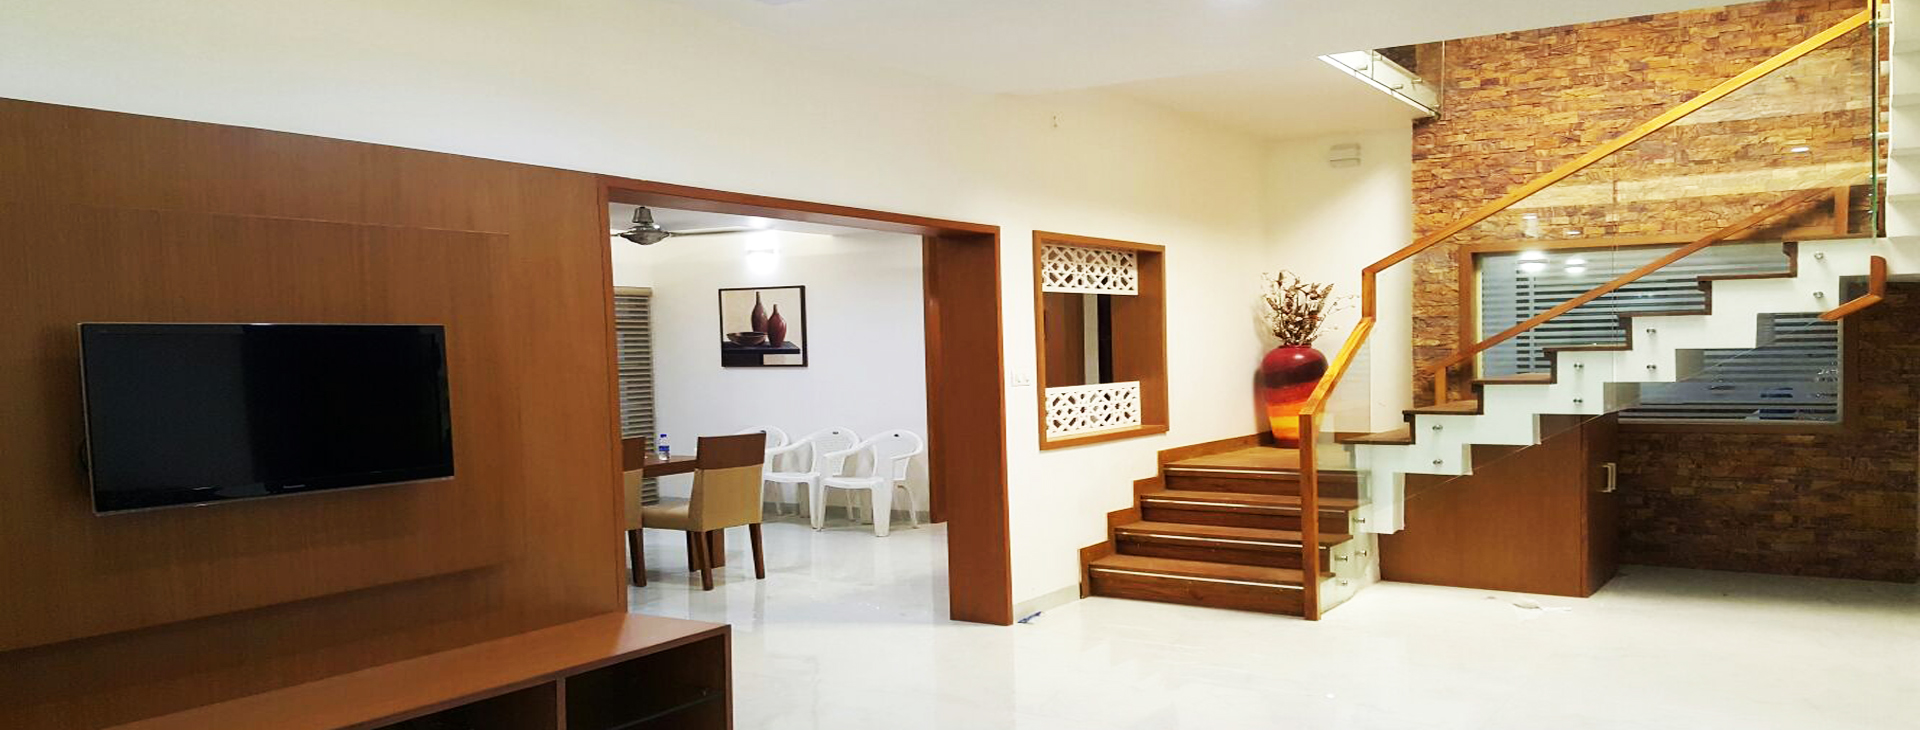 Best Interior Design Company in Bangalore